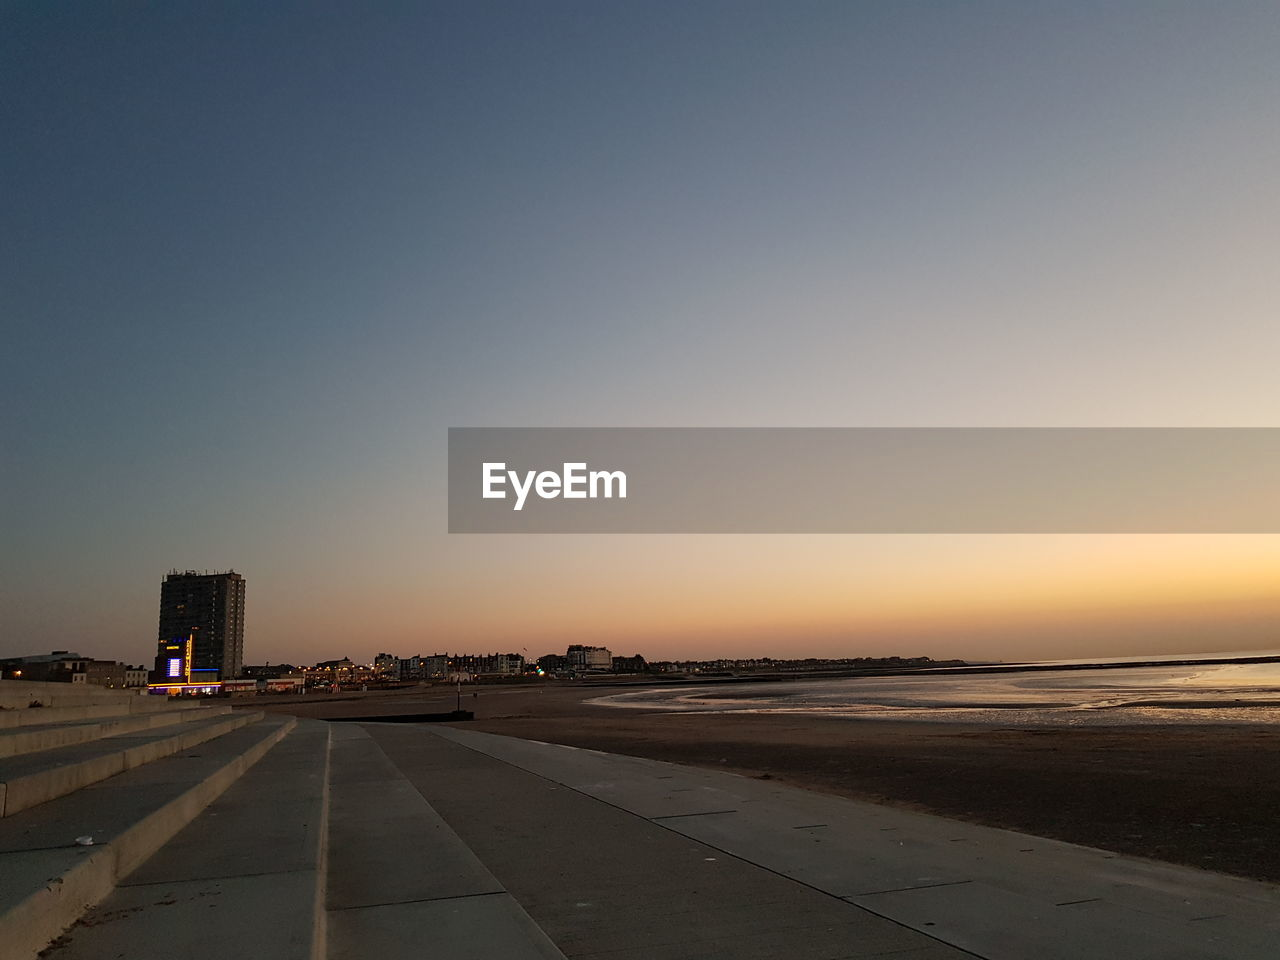 sky, sunset, clear sky, copy space, nature, transportation, airport, architecture, no people, orange color, built structure, airport runway, road, mode of transportation, building exterior, beauty in nature, outdoors, scenics - nature, air vehicle, city